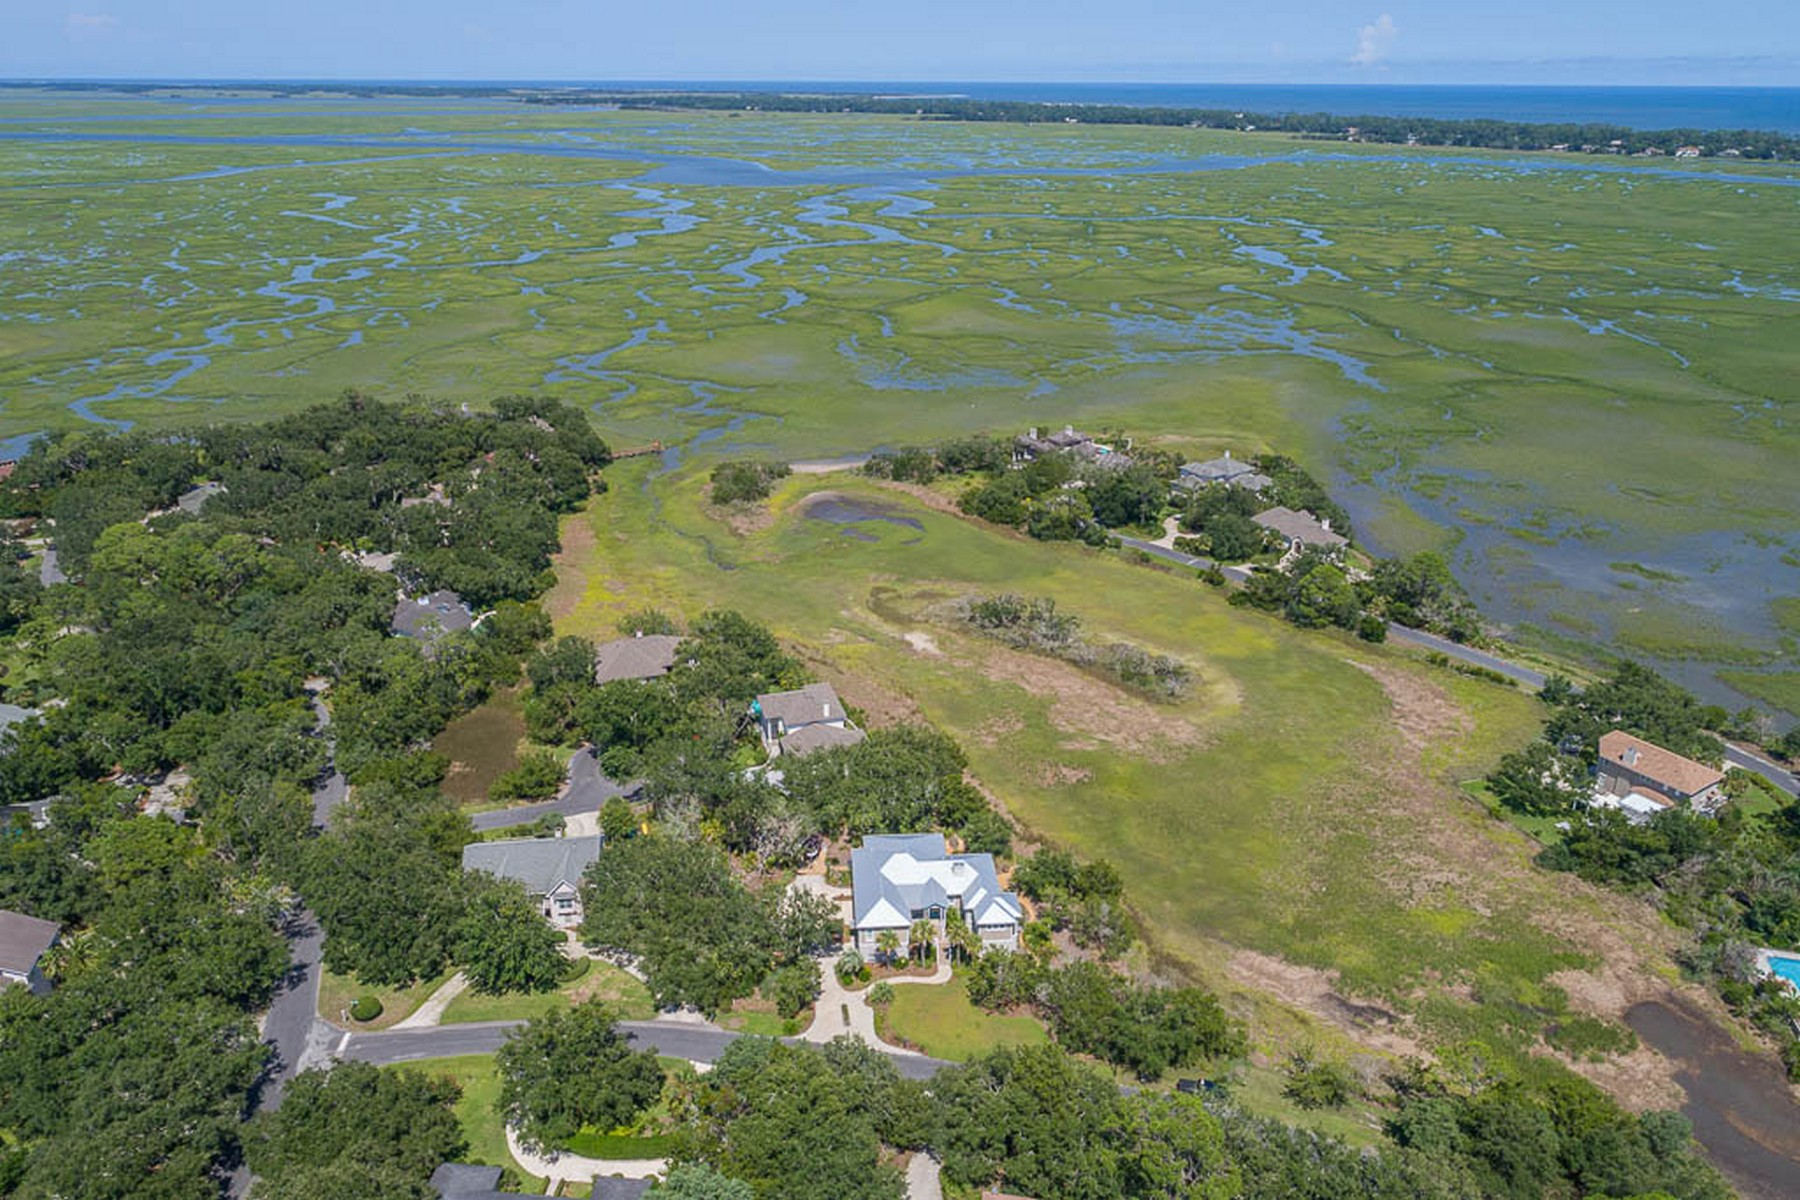 Single Family Homes for Sale at 198 Shore Rush Drive St. Simons Island, Georgia 31522 United States